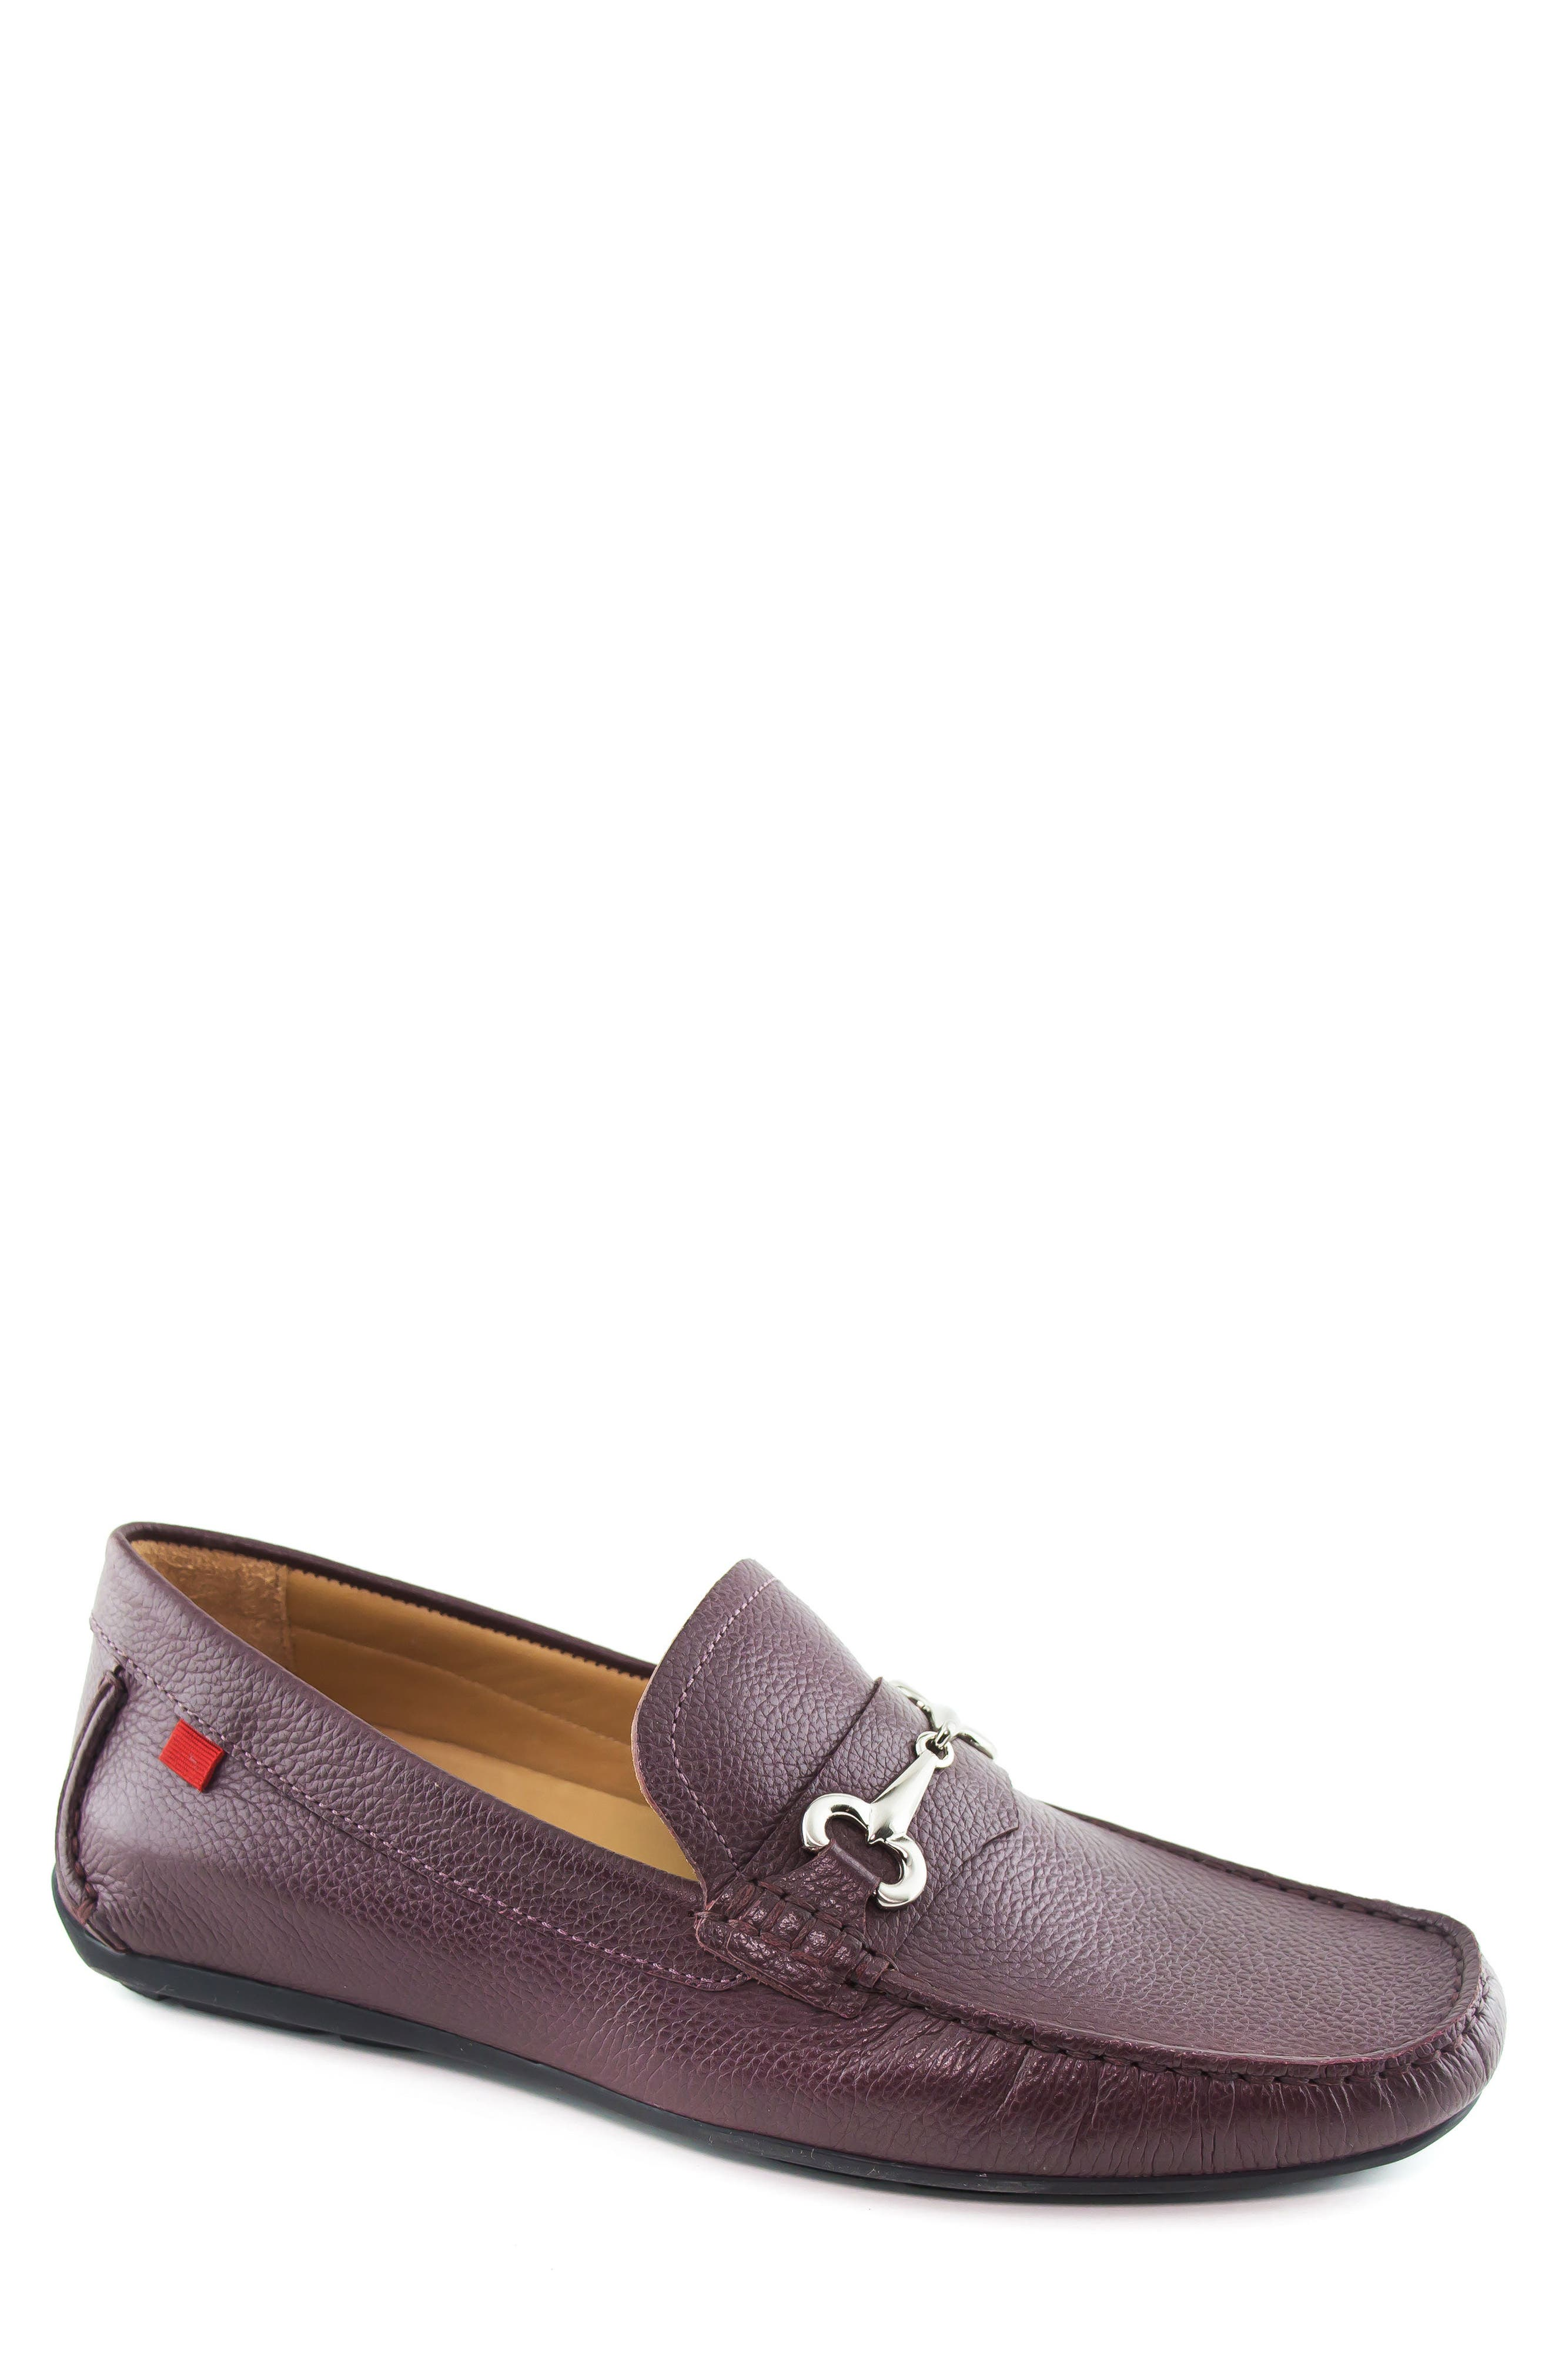 Wall Street Driving Shoe,                         Main,                         color, Wine